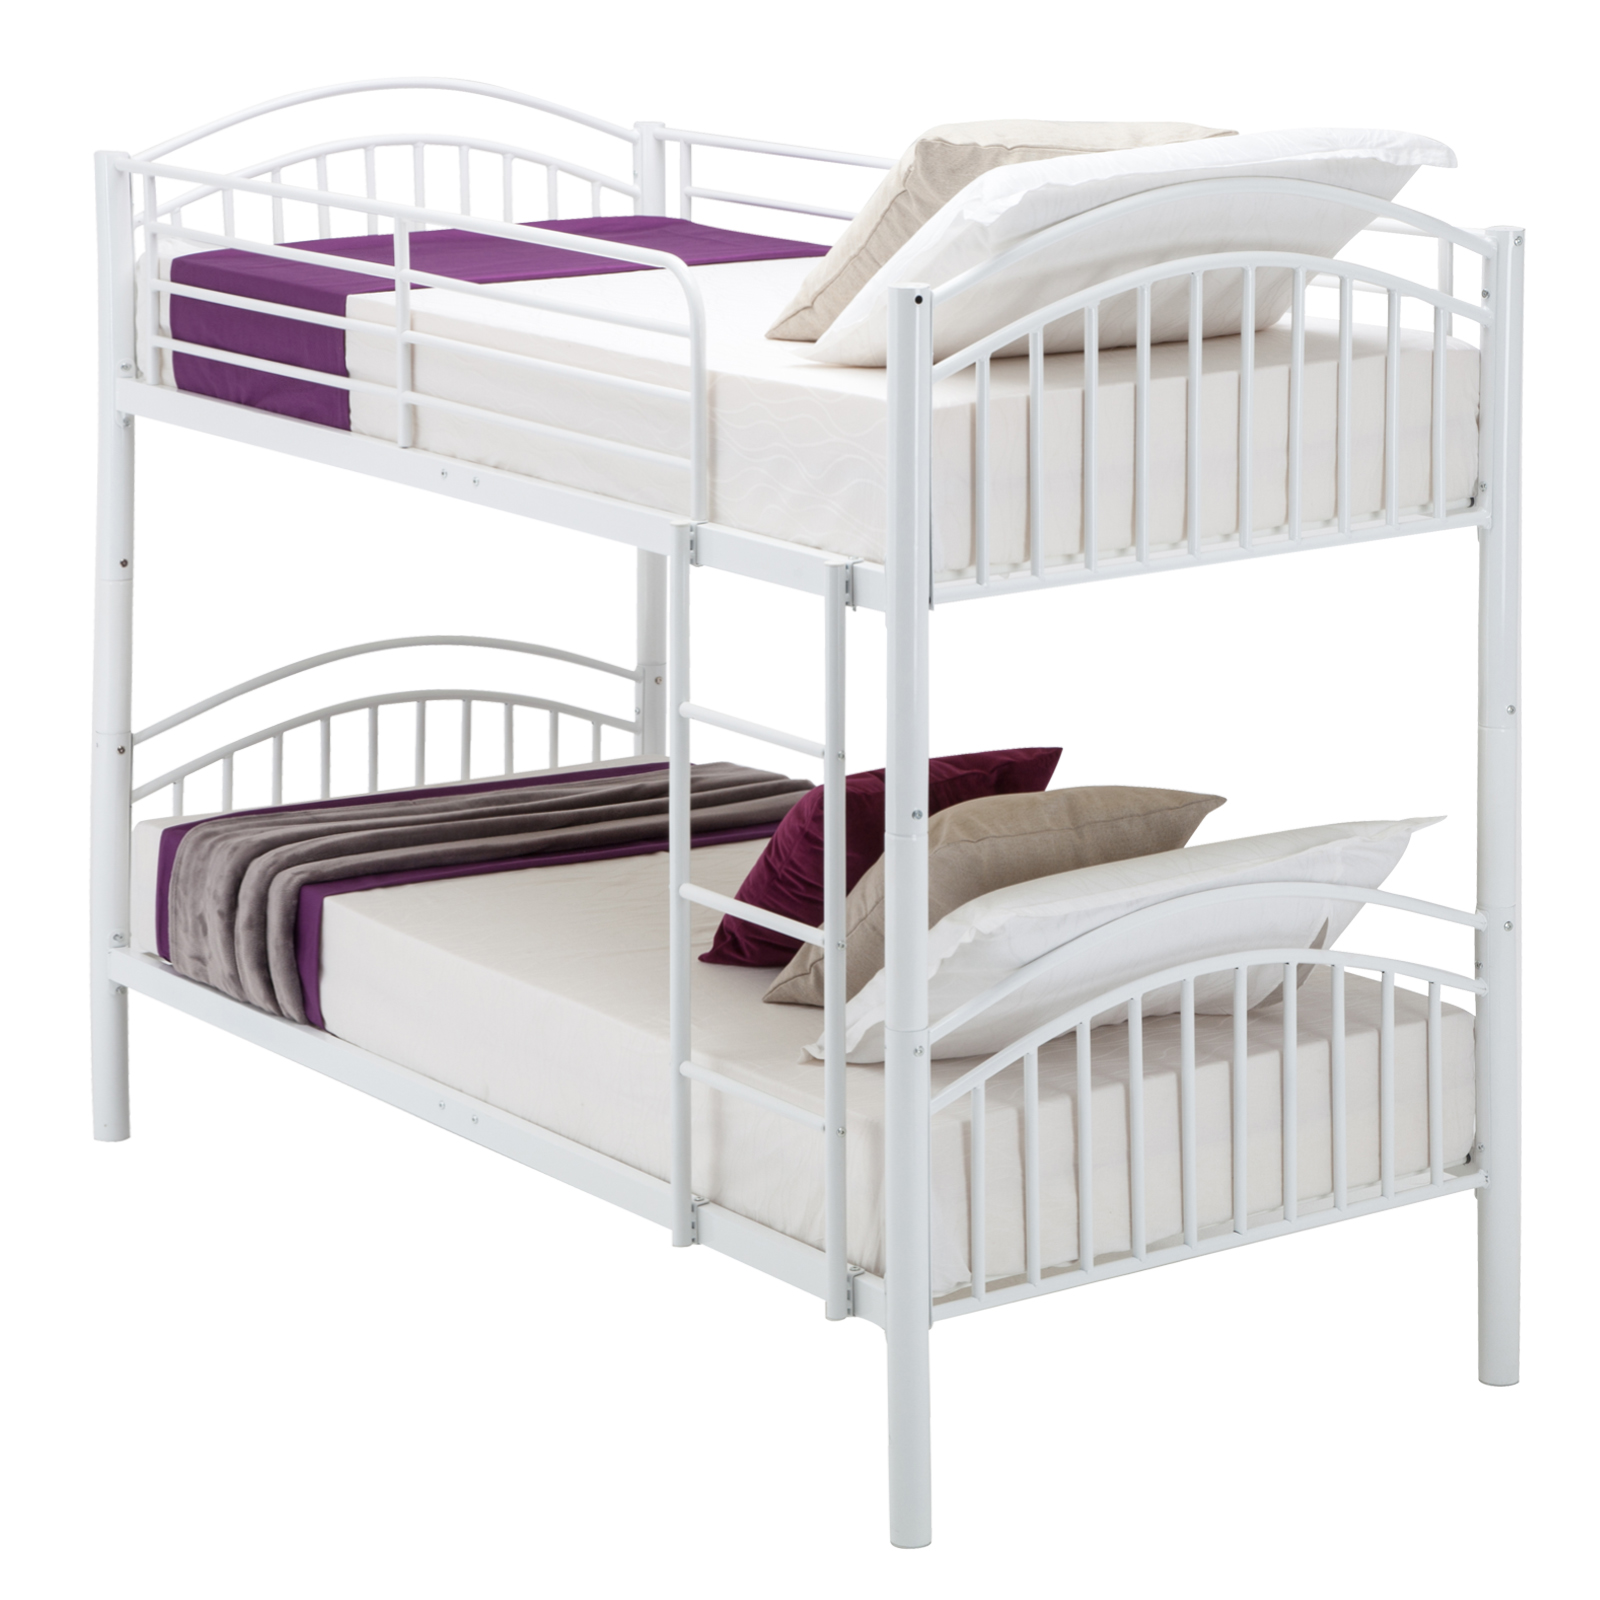 Modern 3ft single white metal bunk bed frame 2 person for for Bunk bed frame